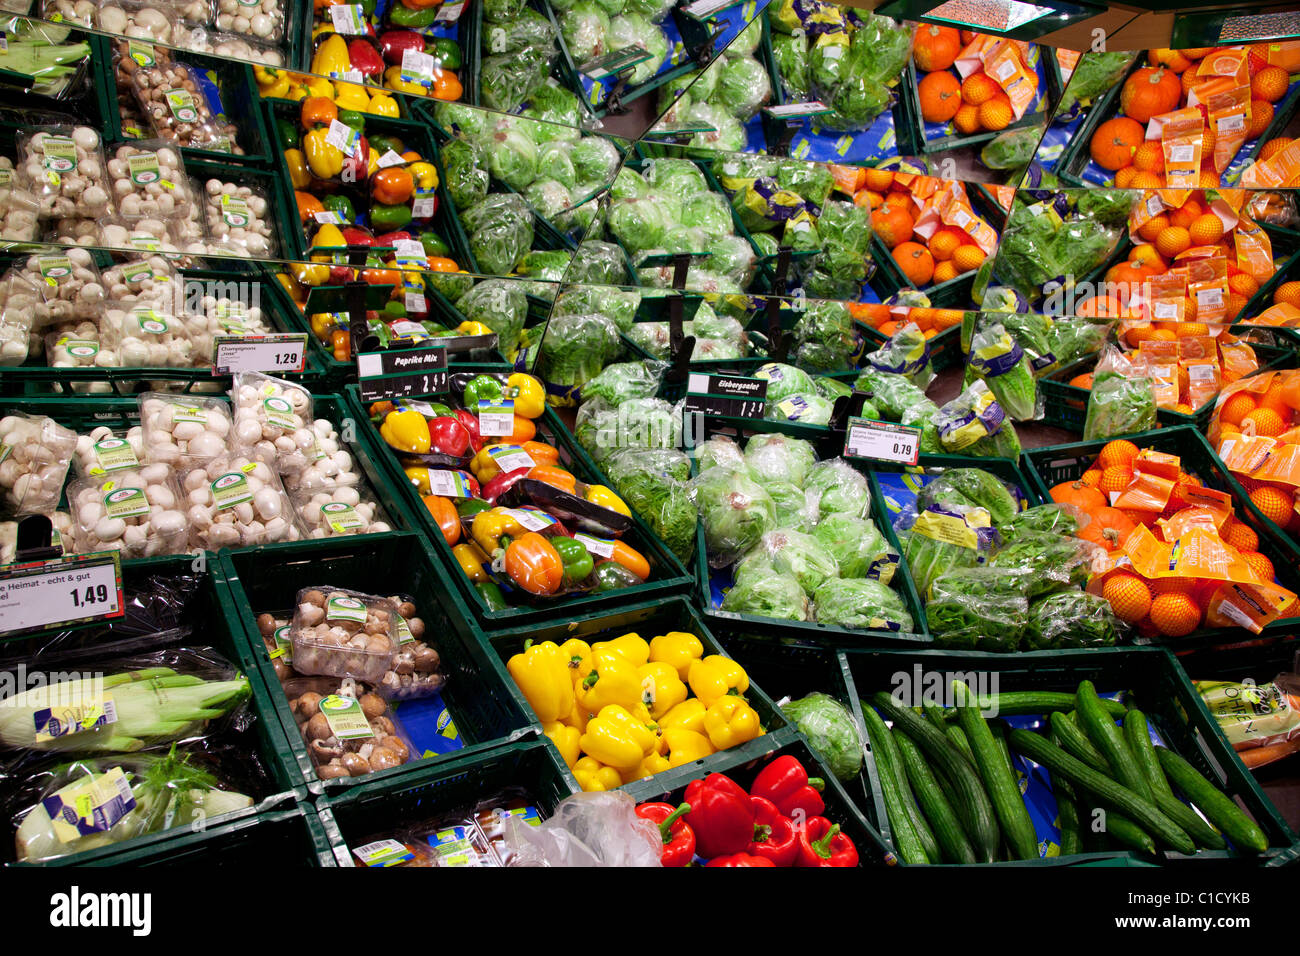 vegetables supermarket shelves stockfotos vegetables supermarket shelves bilder alamy. Black Bedroom Furniture Sets. Home Design Ideas